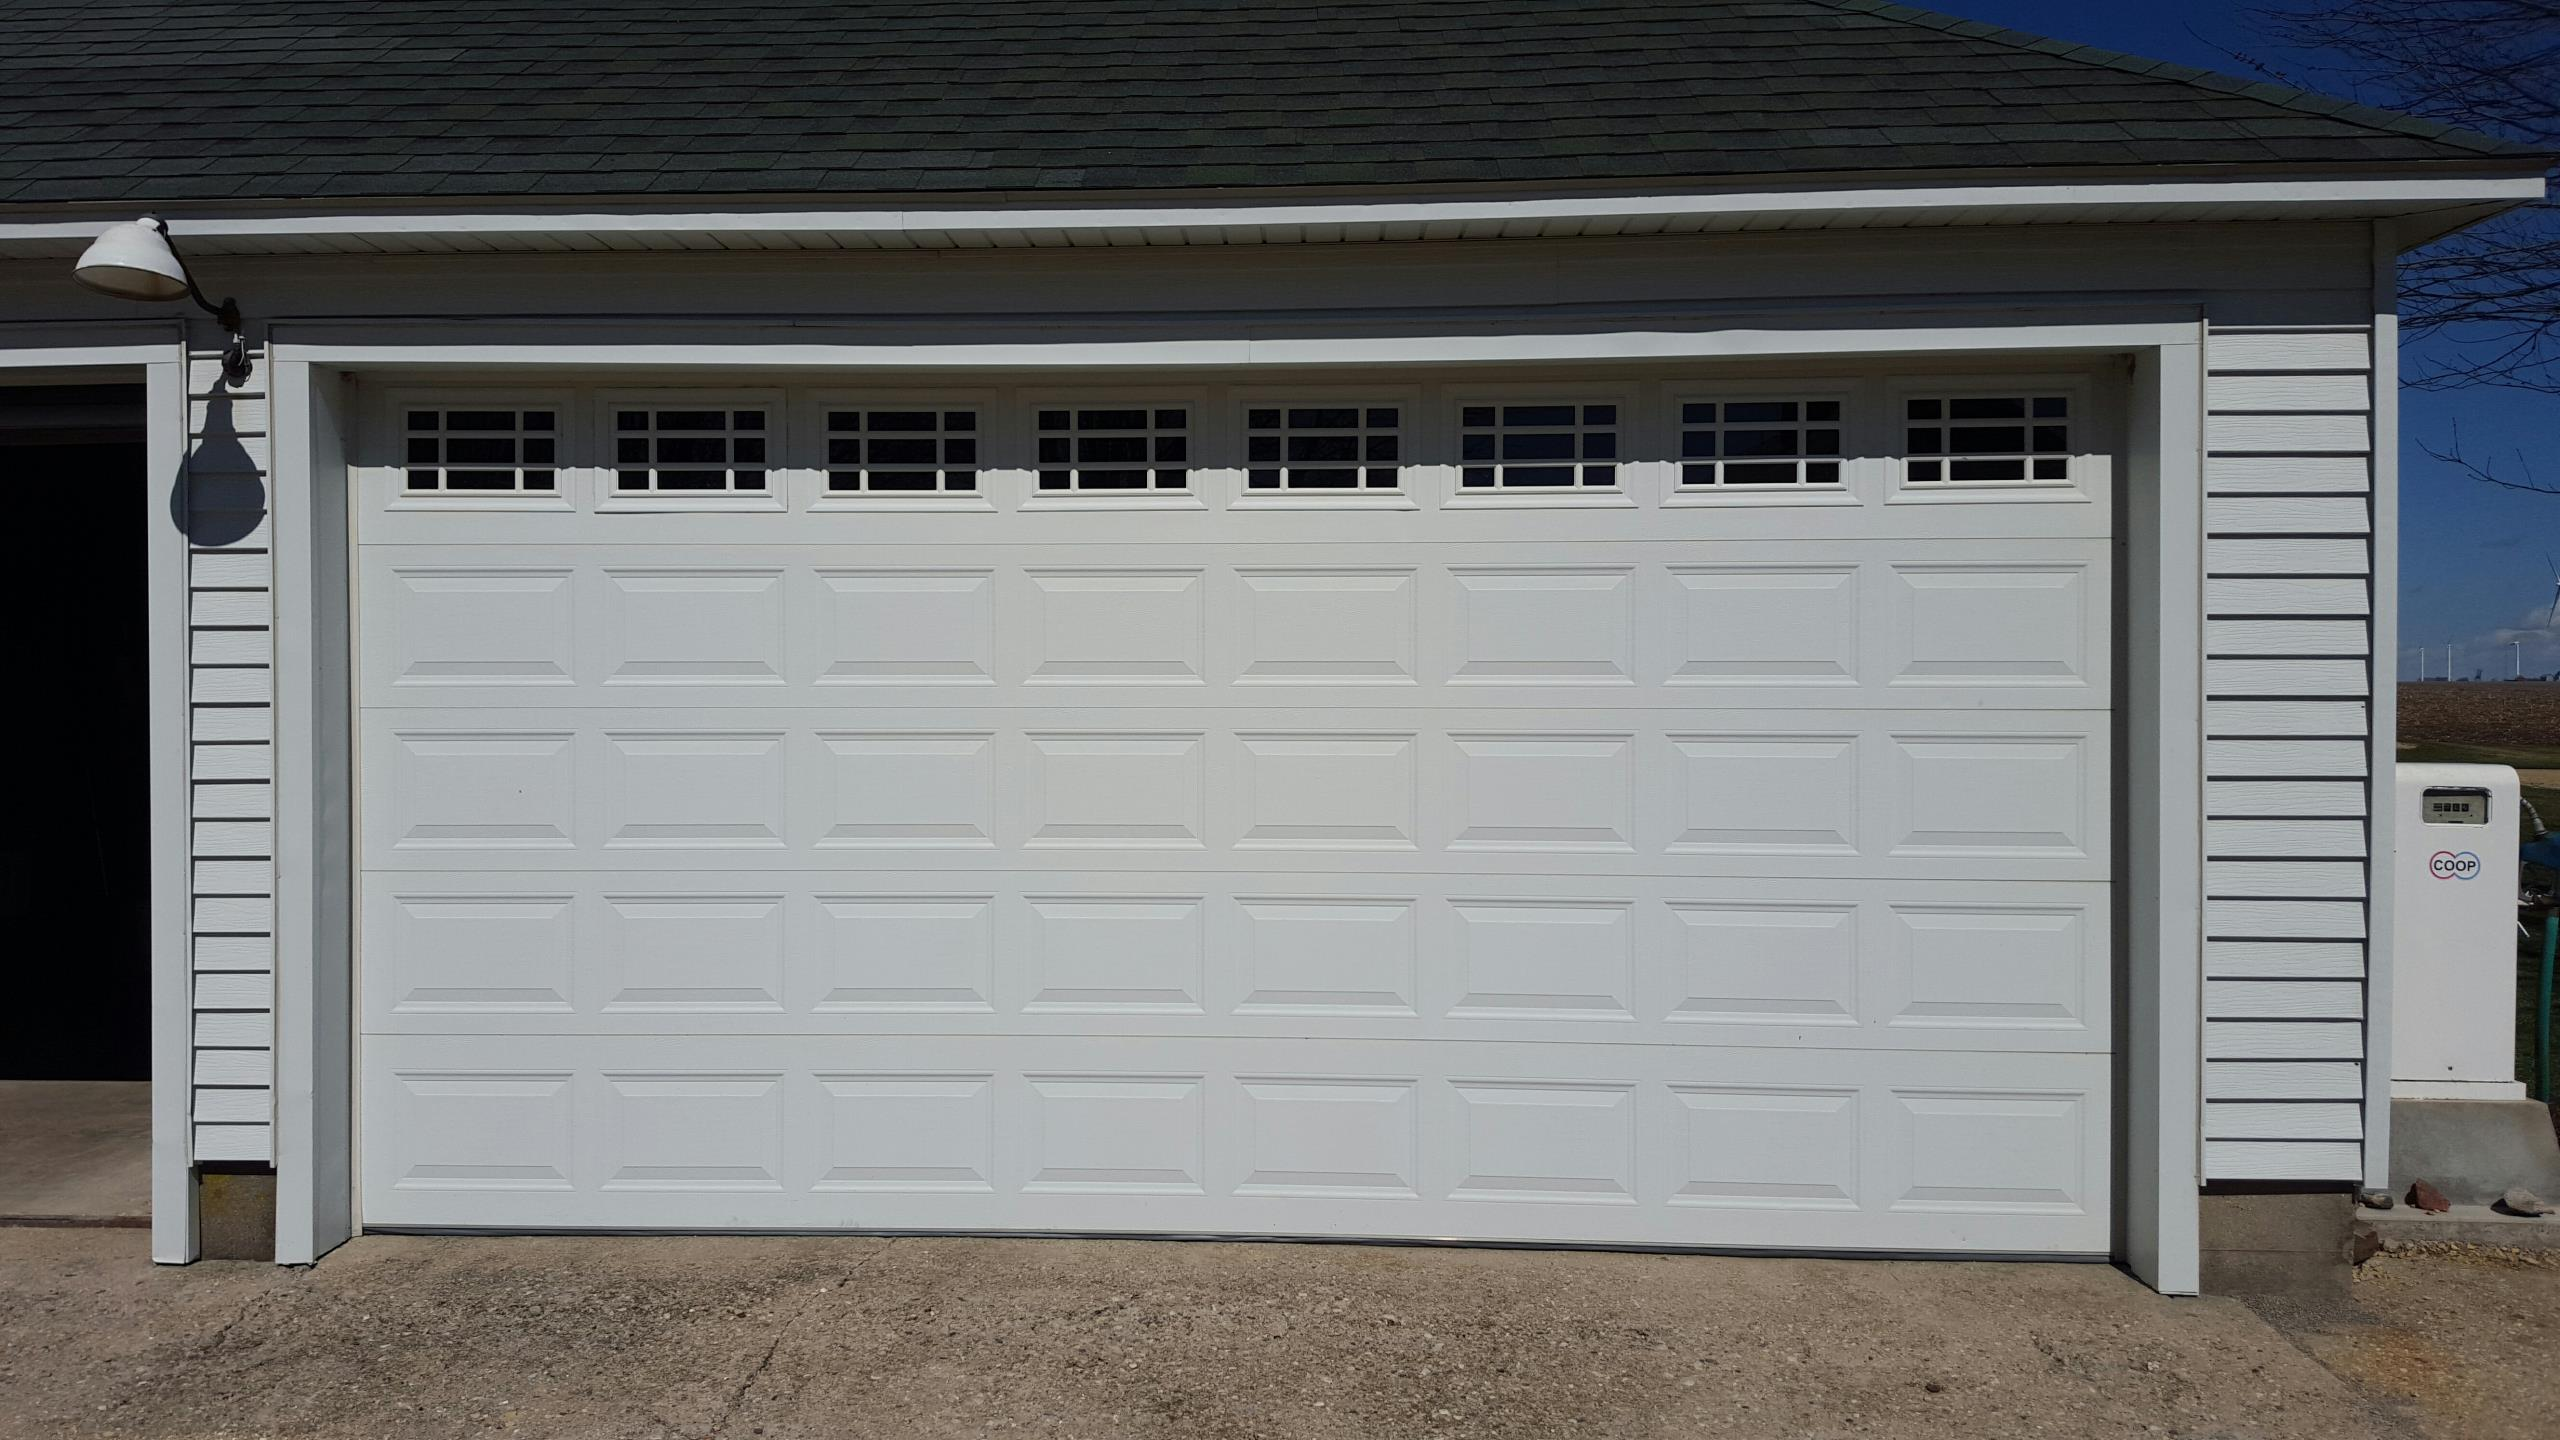 1440 #294269 Garage Doors And Garage Door Repair picture/photo Garage Doors Near Me 37392560